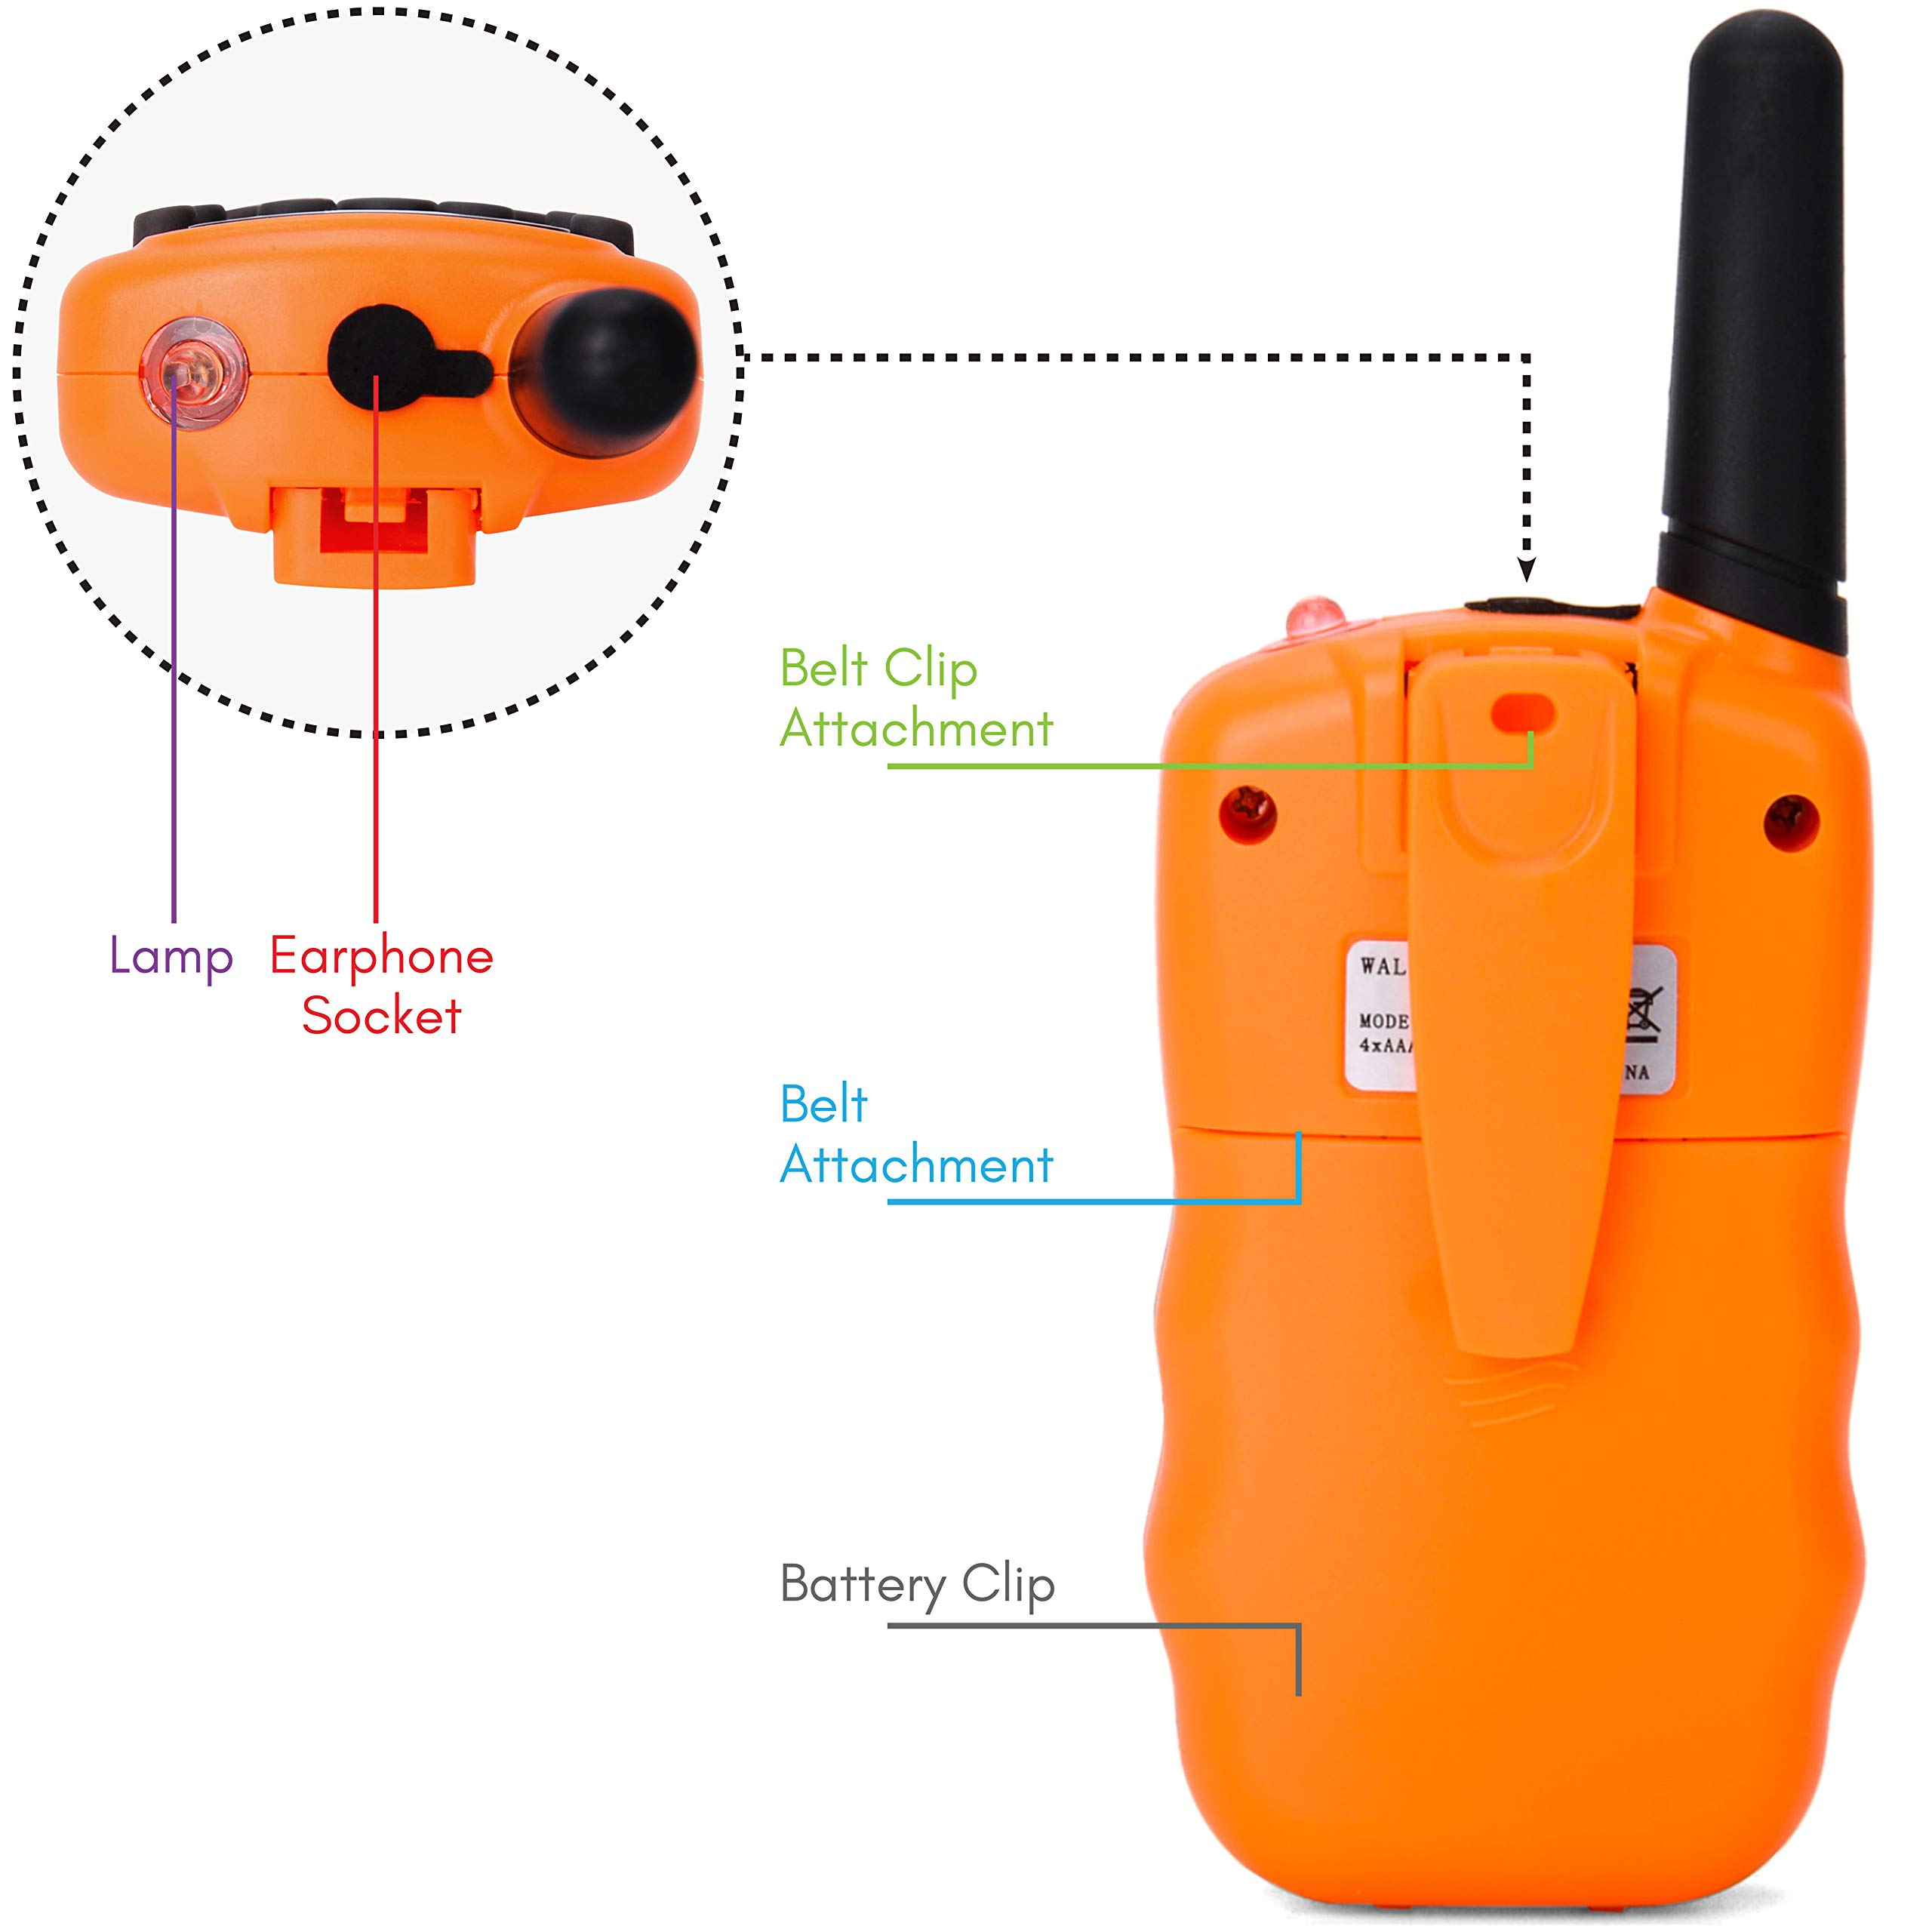 Walkie Talkies for Kids - (Vox Box) Voice Activated Walkie Talkies Toy for Kids, Two Way Radios Pair for Boys & Girls, Limited Edition Color Best Gift Long Range 3+ Miles Children's Walkie Talkie Set by MOBIUS Toys (Image #3)